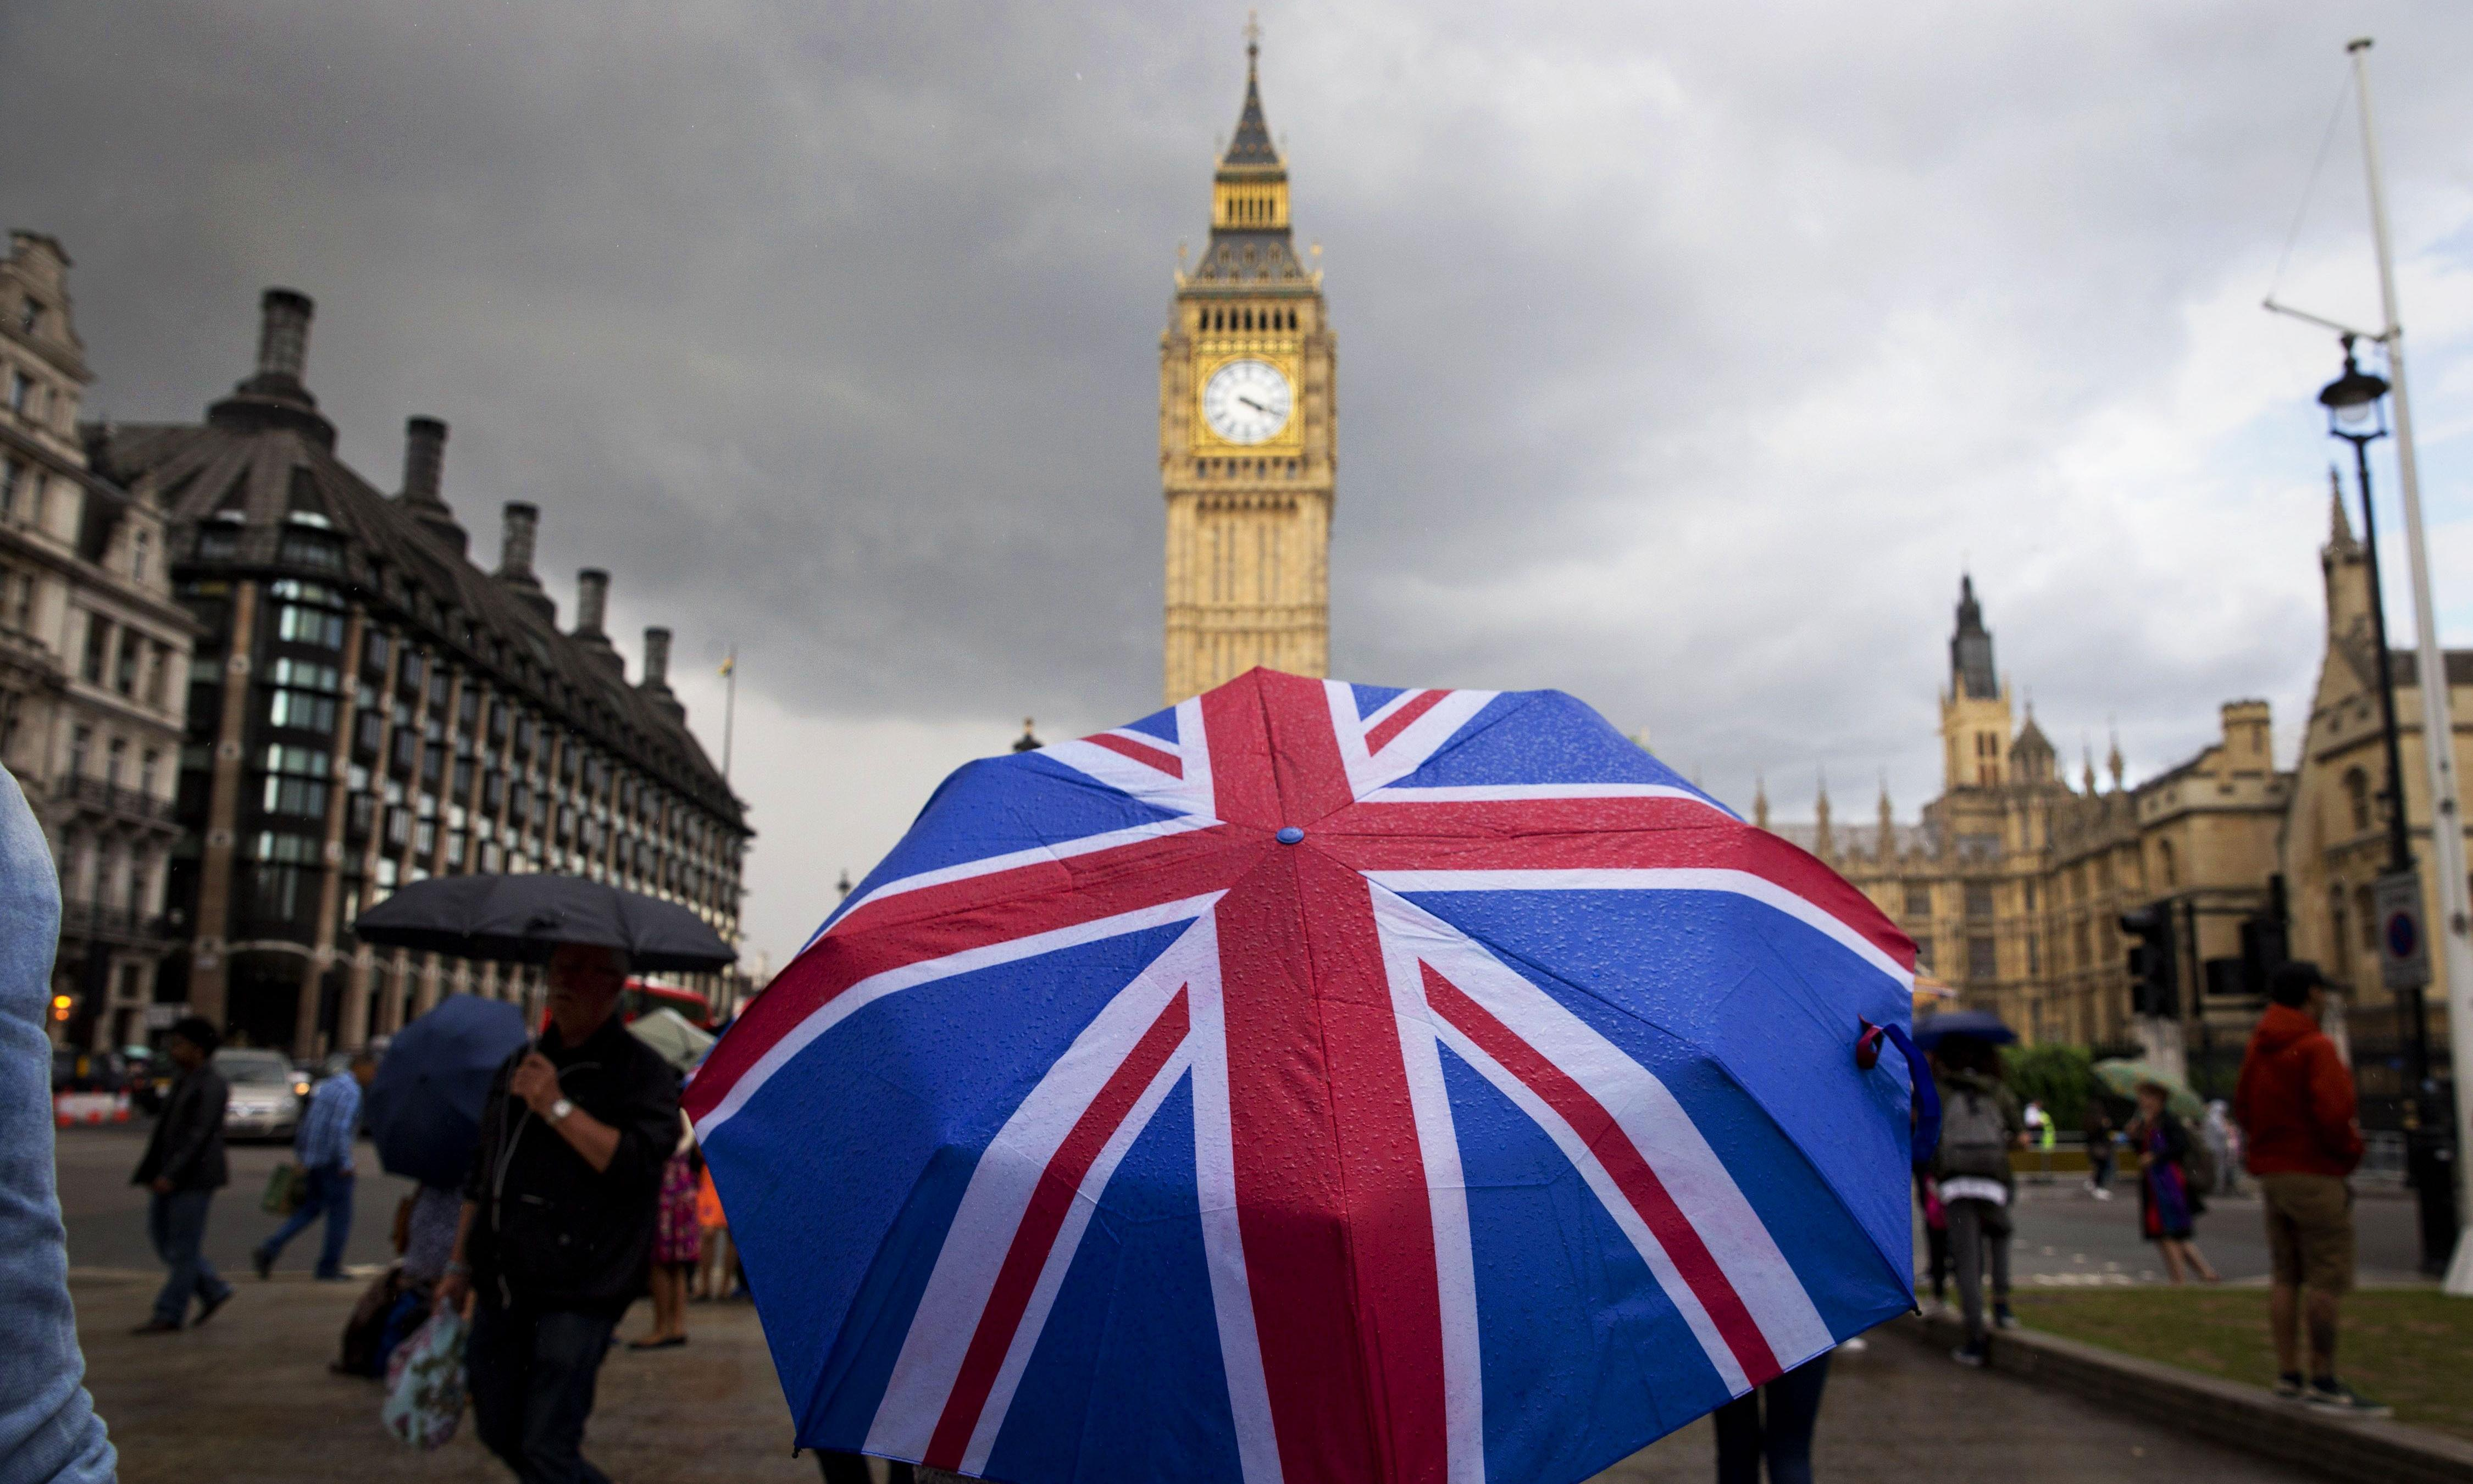 A semi-Brexit, with just England and Wales leaving the EU, is the solution